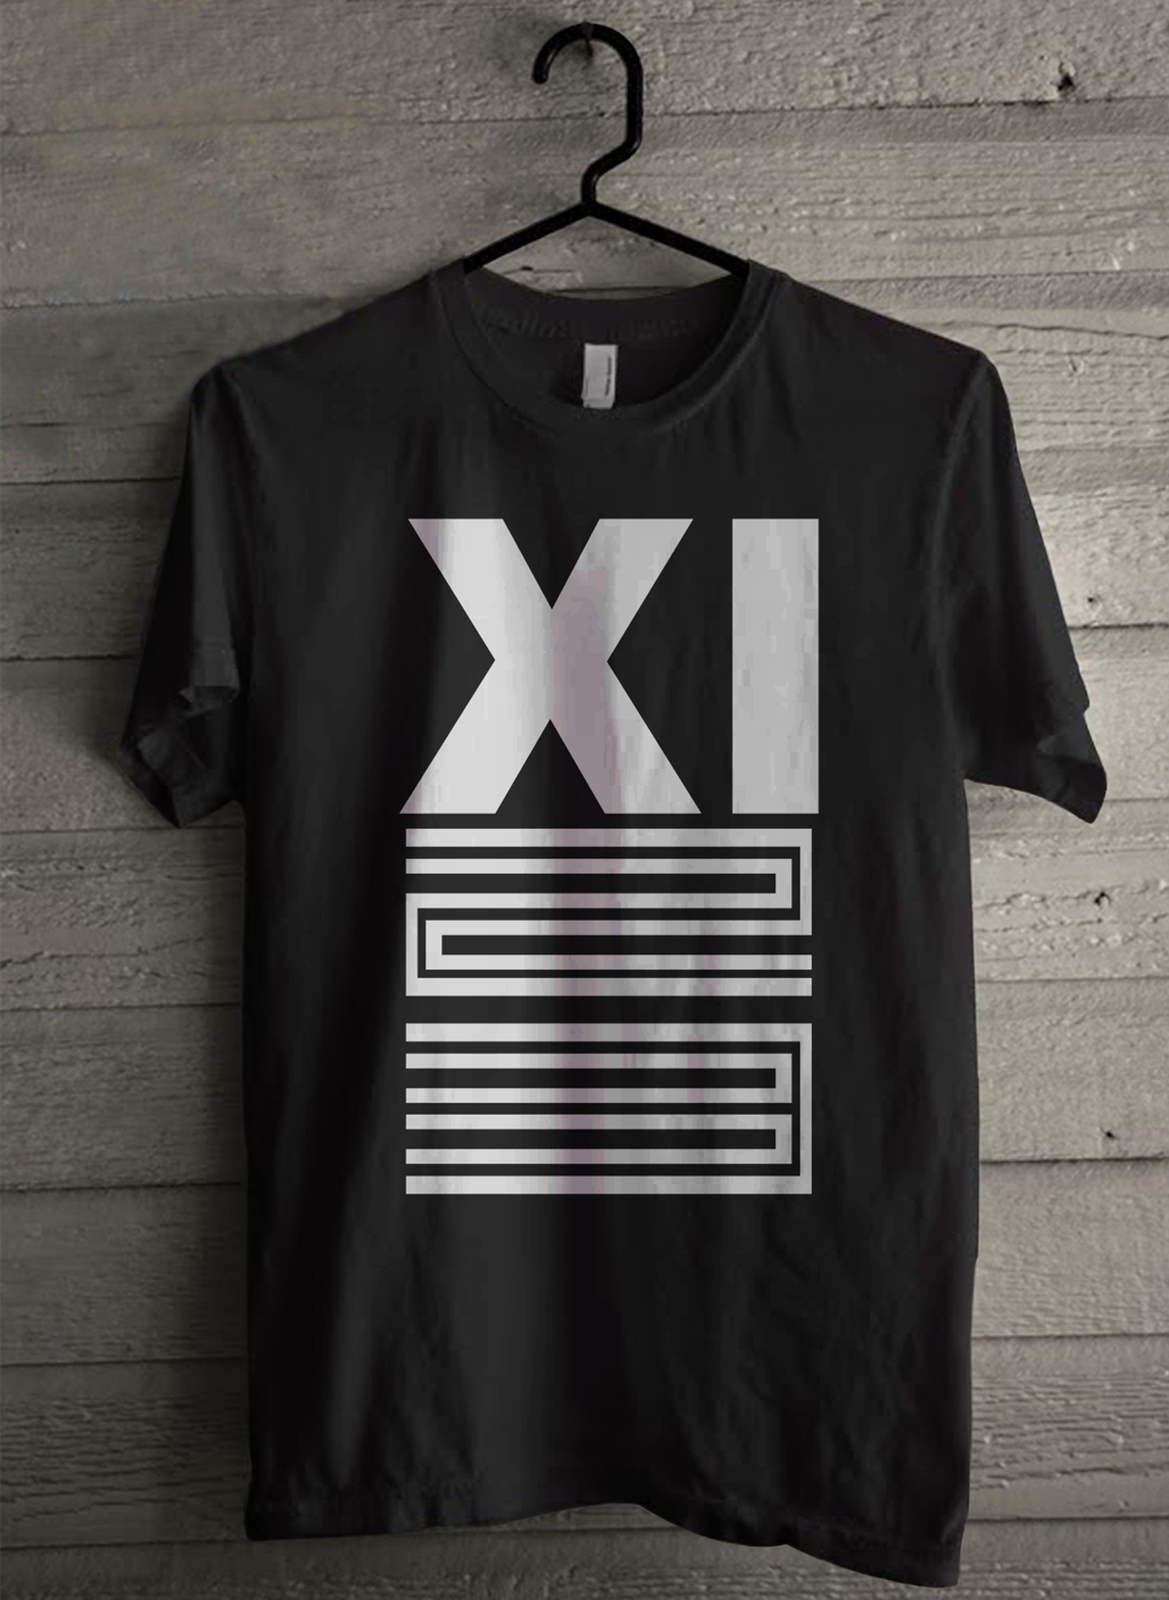 XI 23 - Custom Men's T-Shirt (2533)